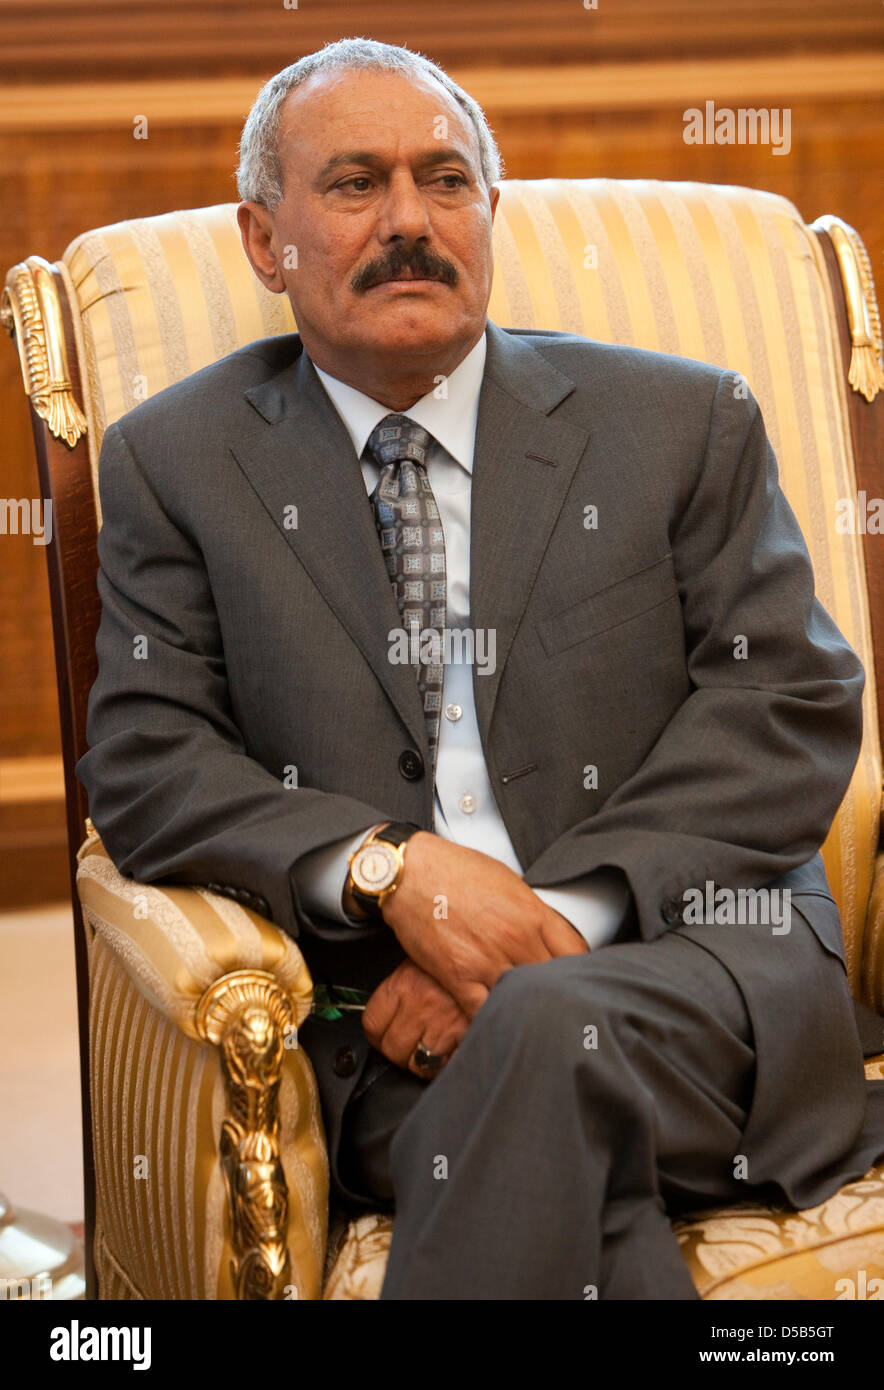 The President of the Republic of Yemen, Ali Abdullah Salih, in Sanaa, Yemen, 11 January 2010. He is one of the longest - Stock Image